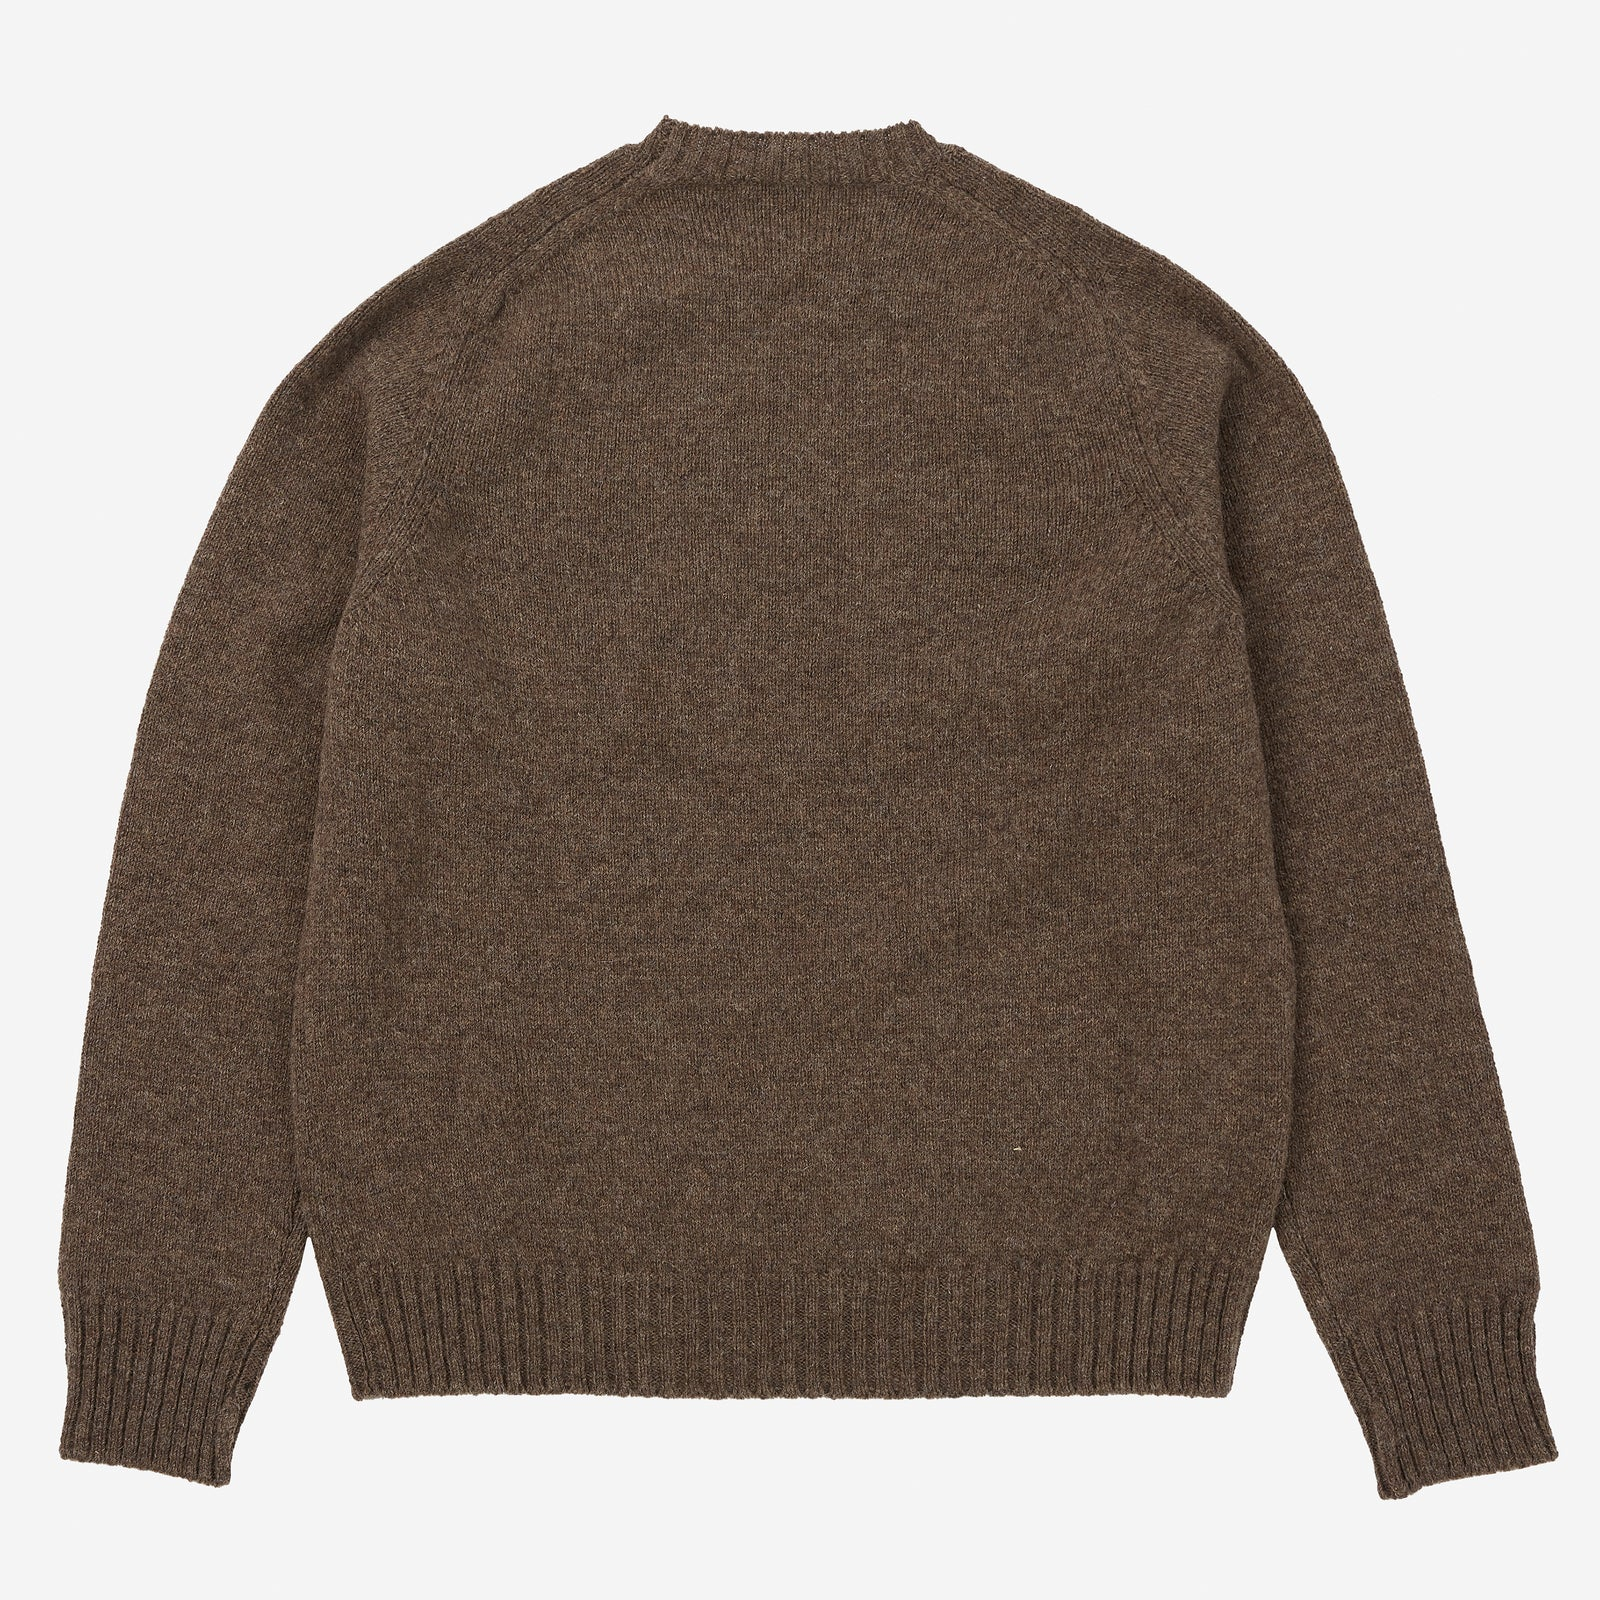 Crewneck Saddle Shoulder Shetland Brown